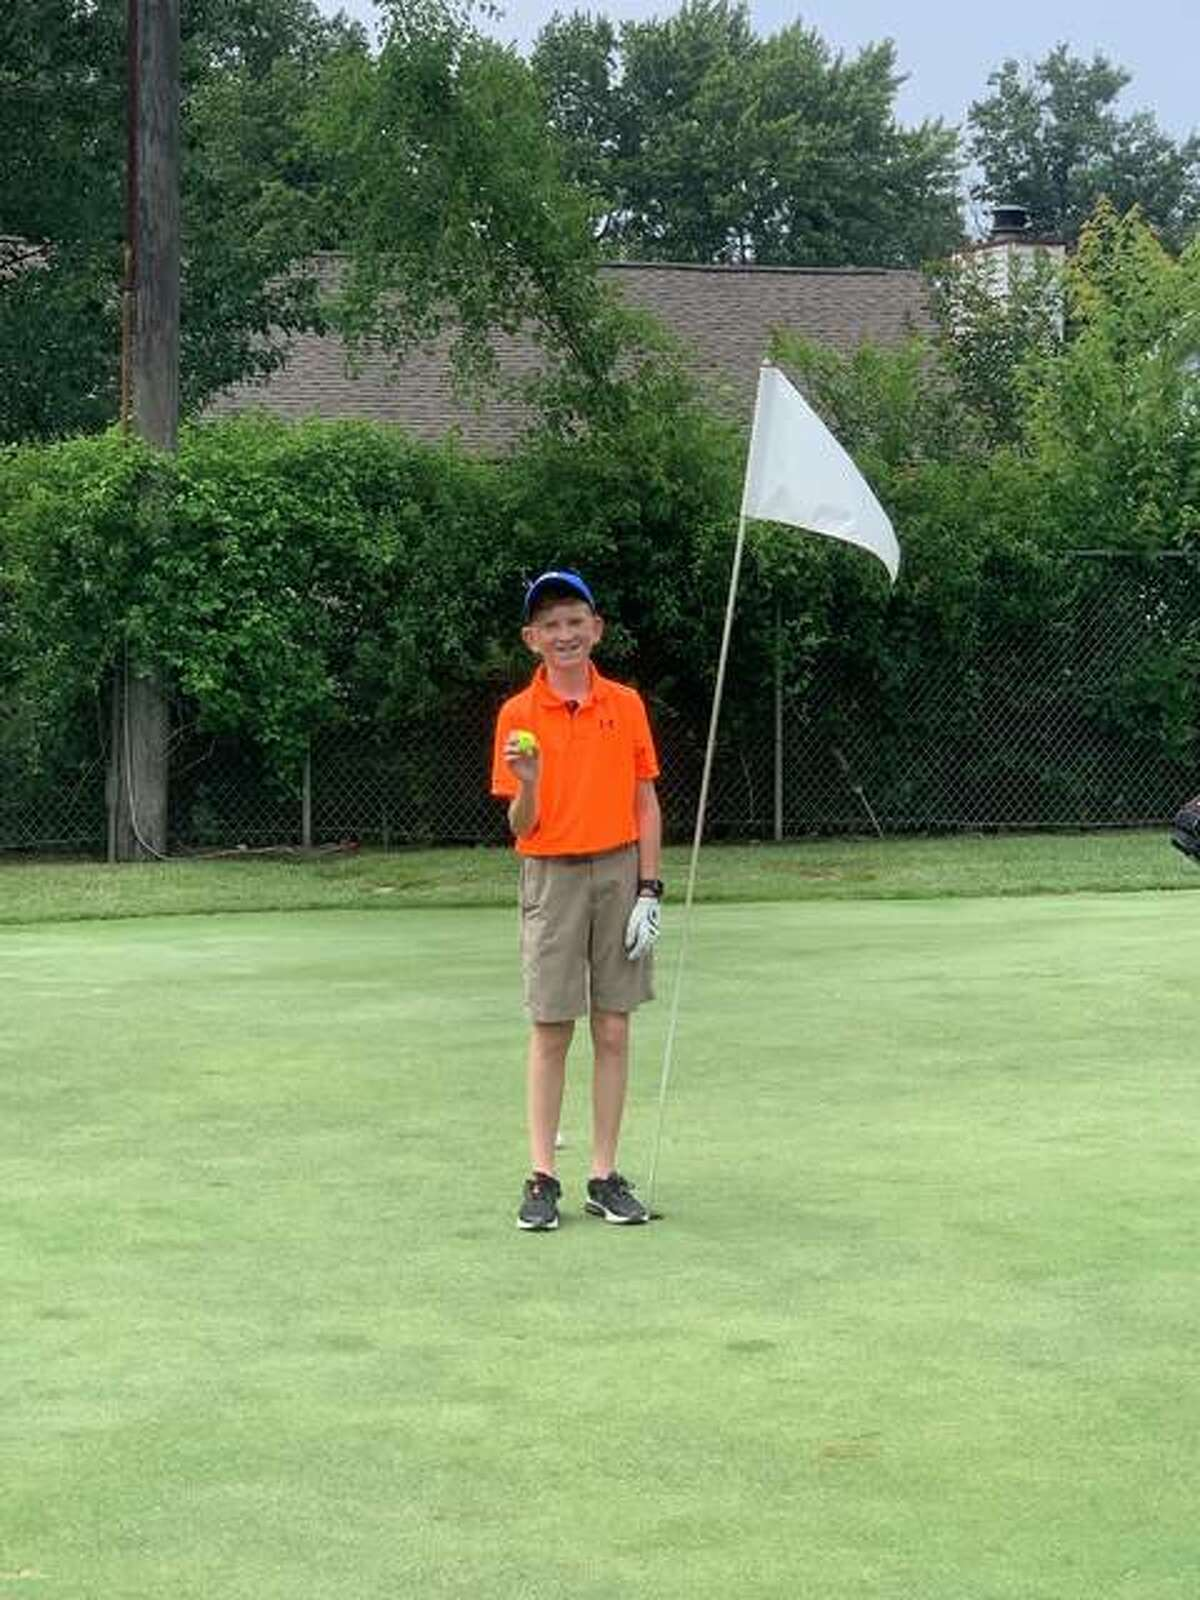 Sam Shaw stands at #14 at Yorktown Golf Course where he hit his first hole-in-one.